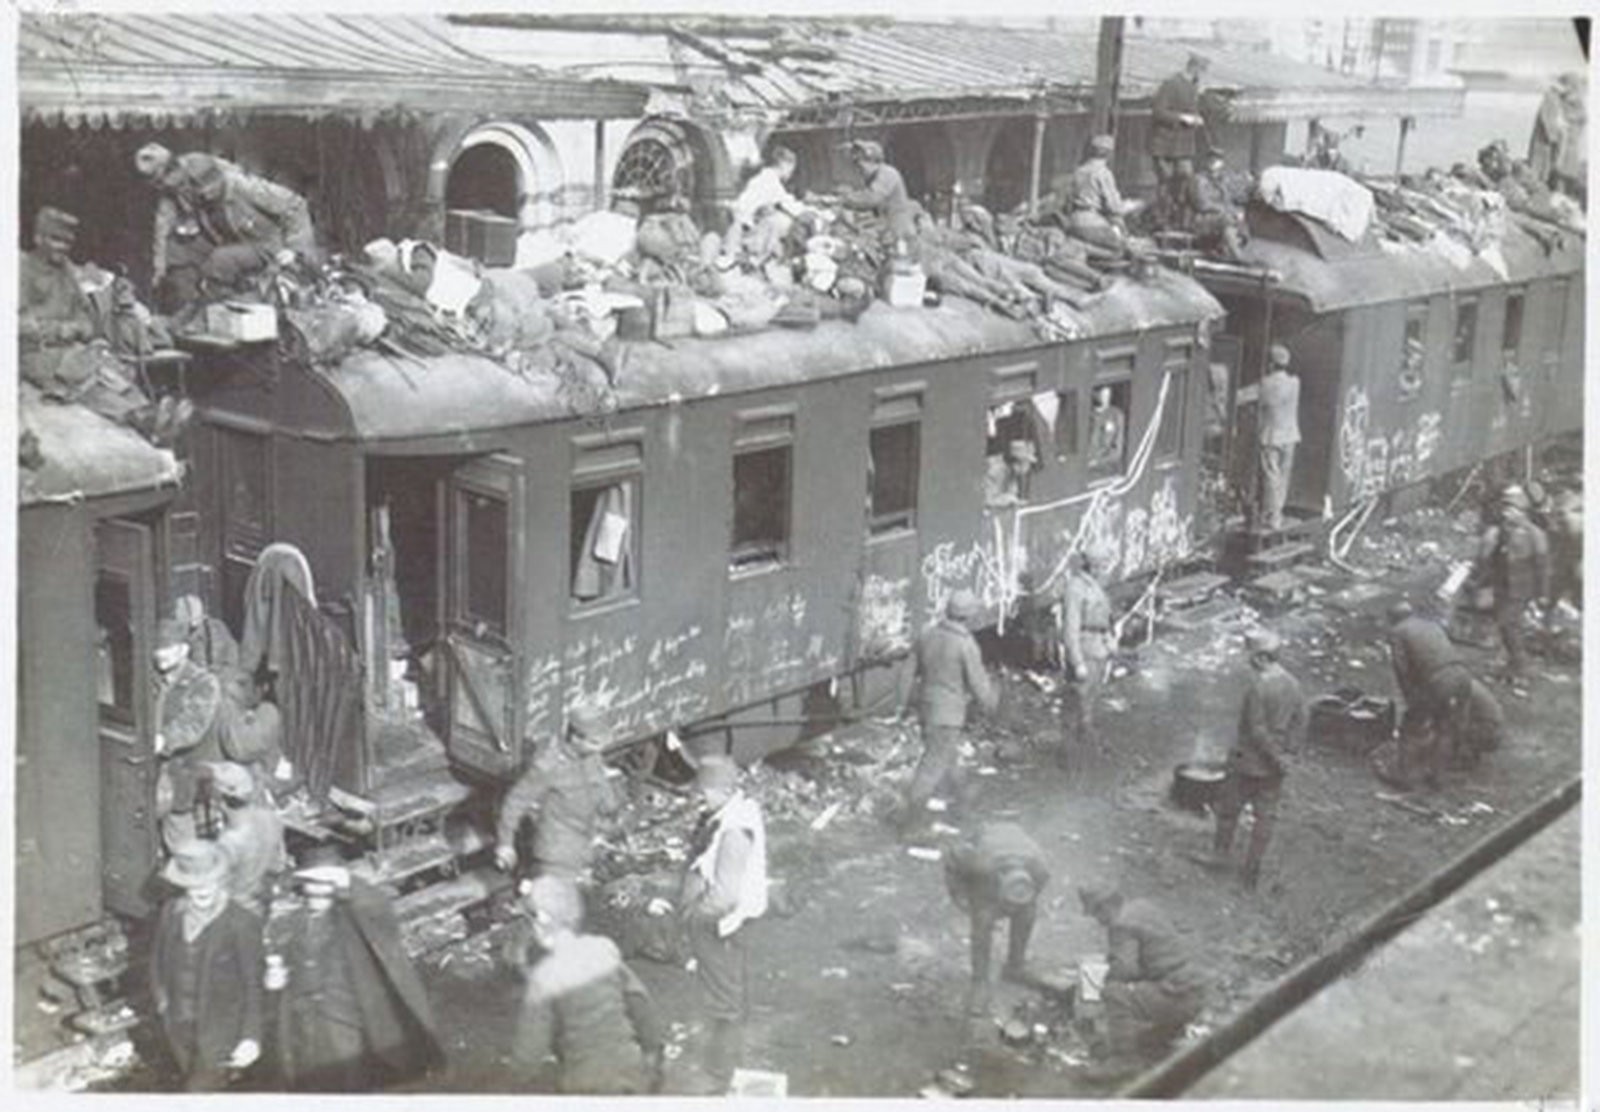 A train is used by soldiers as accommodation, 1918 Italy, Museo Centrale del Risorgimento, In Copyright